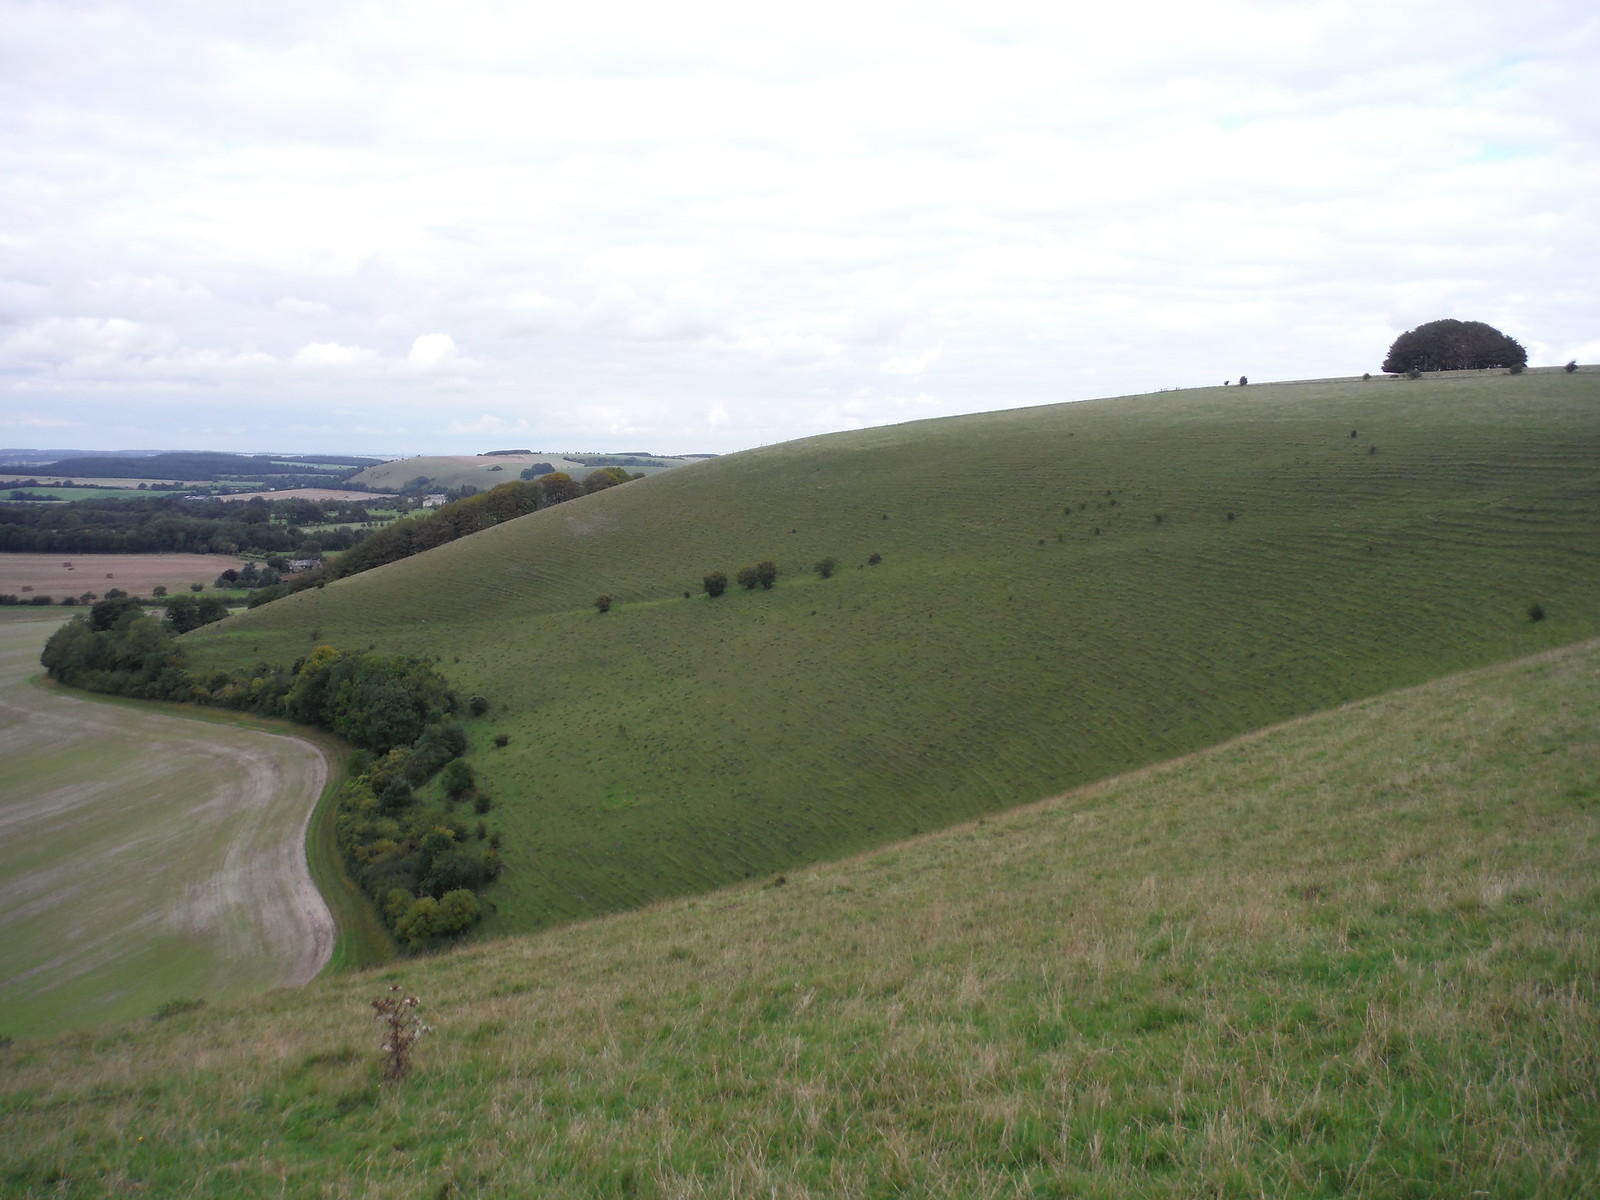 Win Green Hill SWC Walk 251 Tisbury Circular via Ludwell and Berwick St. John